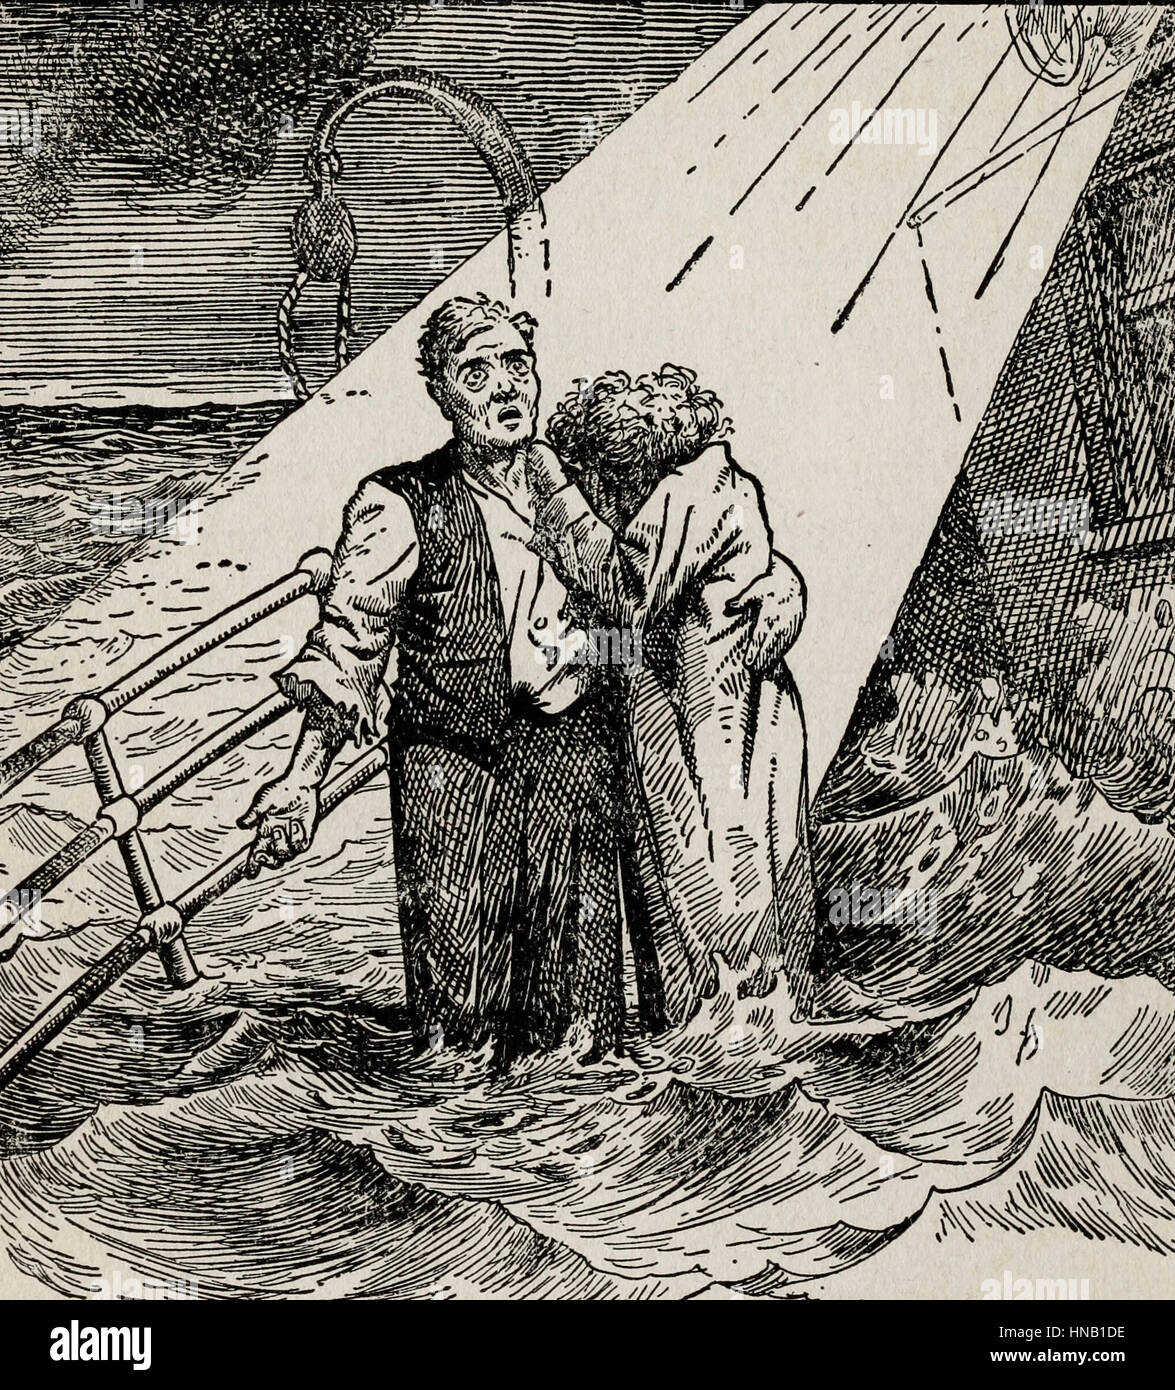 Nearer my God to Thee - aboard the sinking Titanic - Stock Image